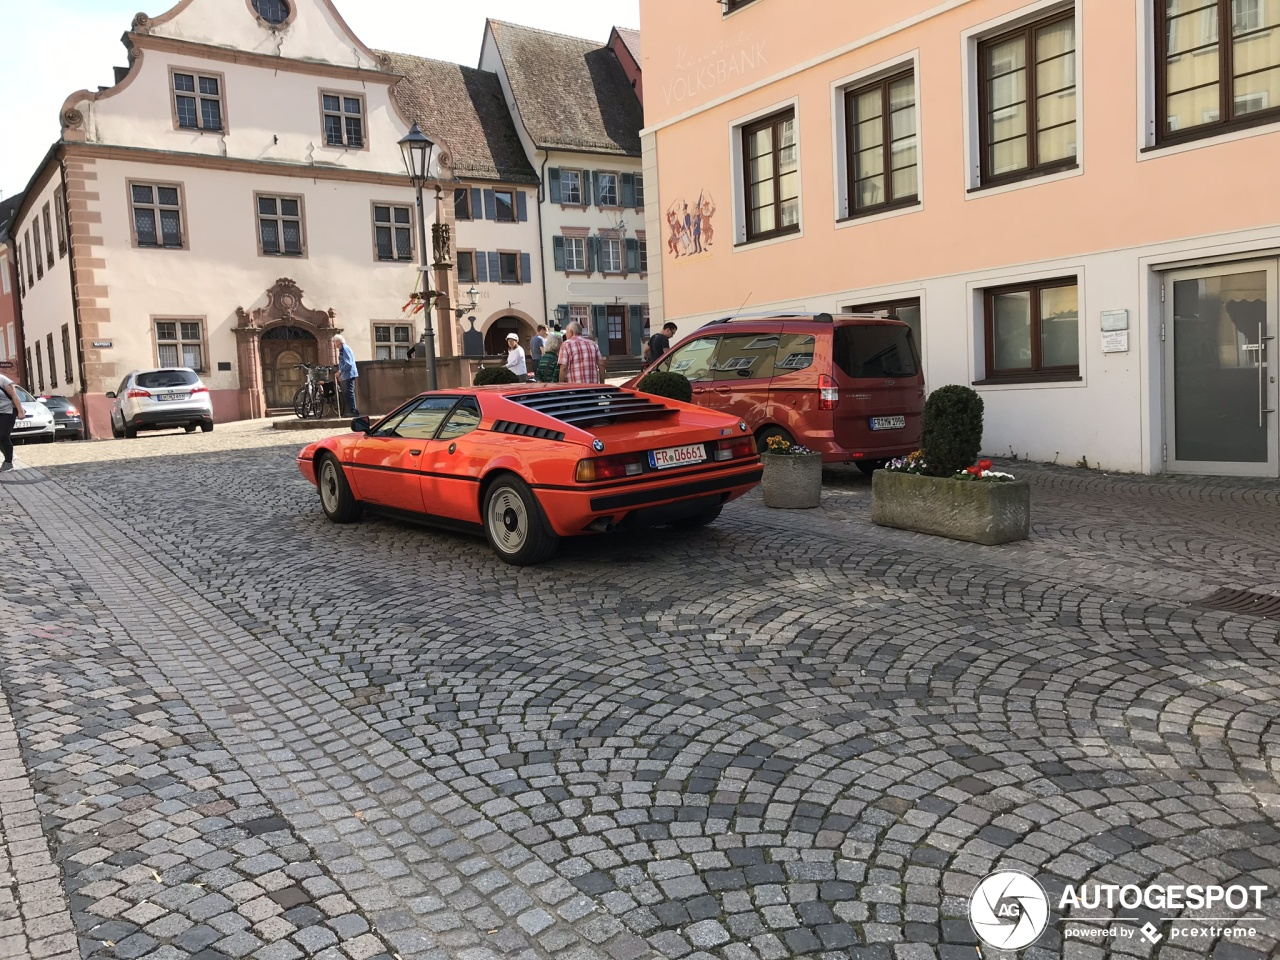 Italian styling, Bavarian engine-building artistry: BMW M1